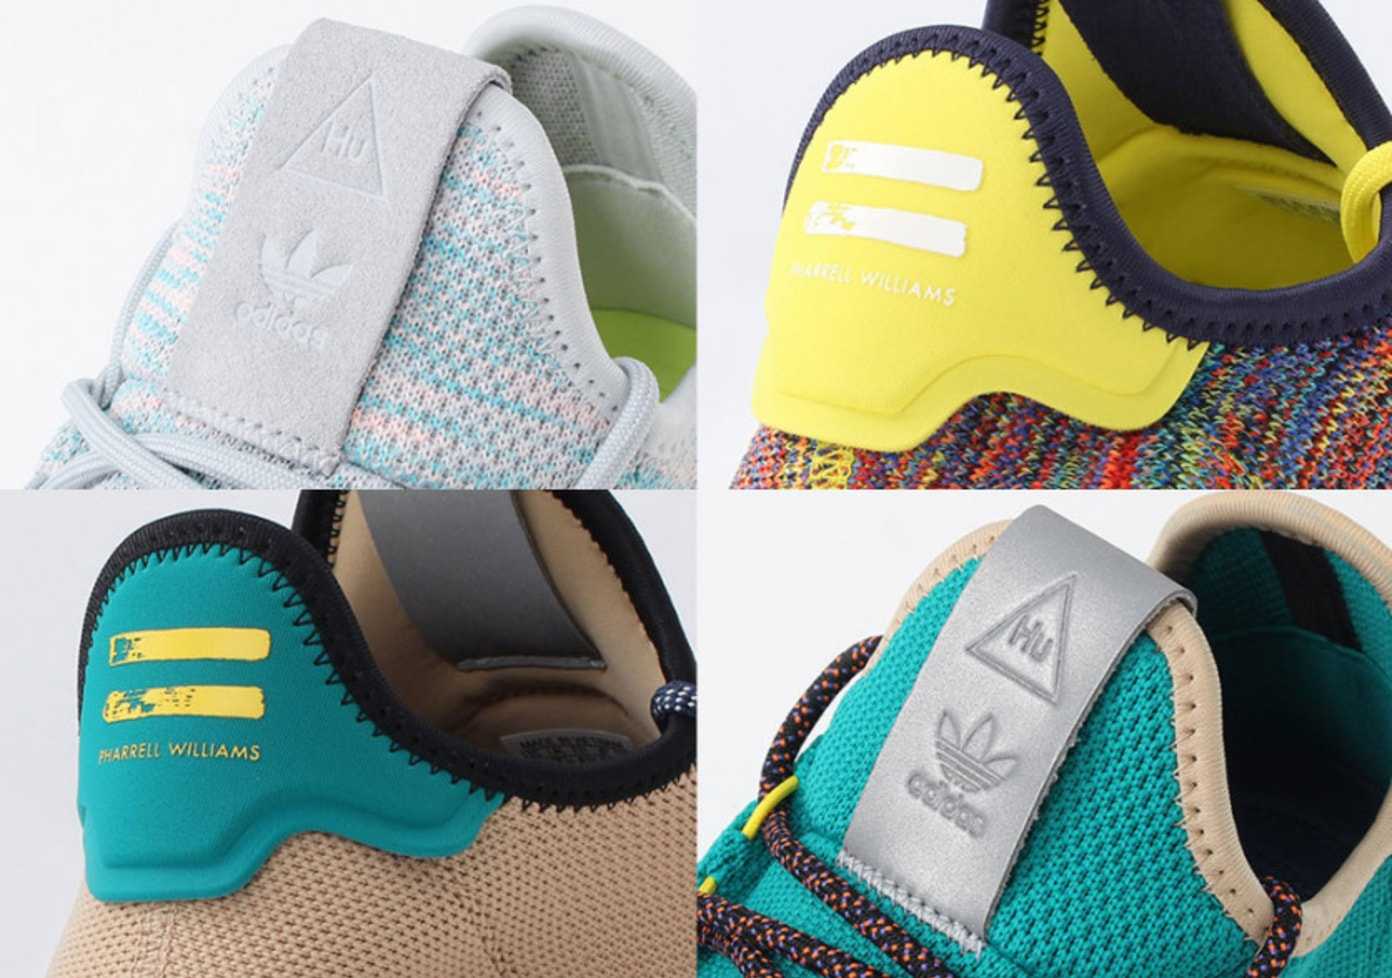 Four New Colourways Of The Pharrell x adidas Tennis Hu